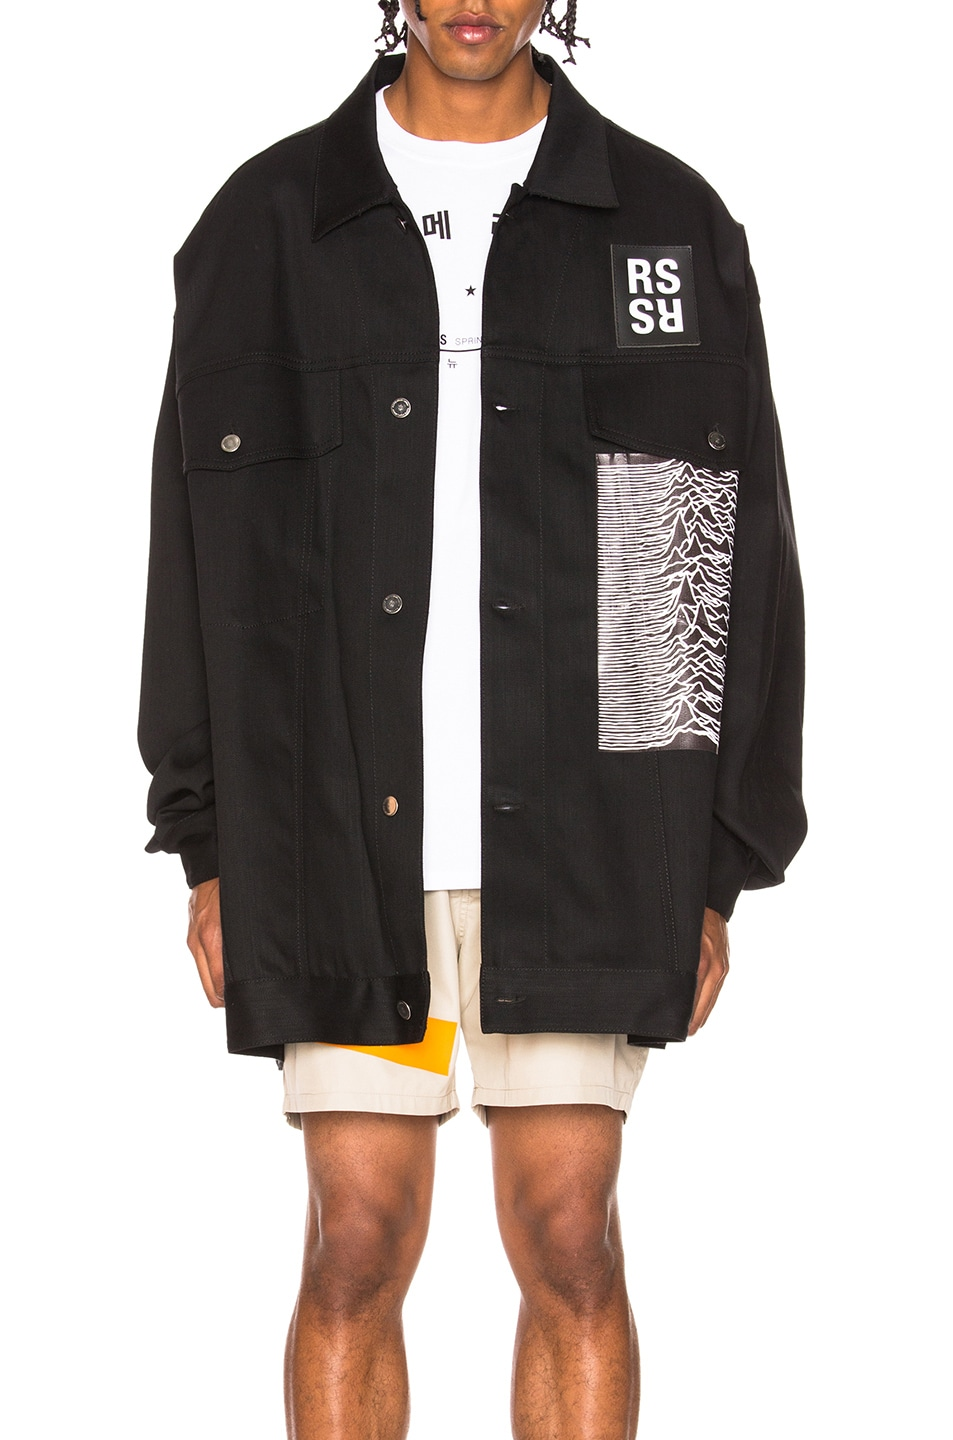 ebf4b6fdf0d Image 1 of Raf Simons Denim Jacket in Black